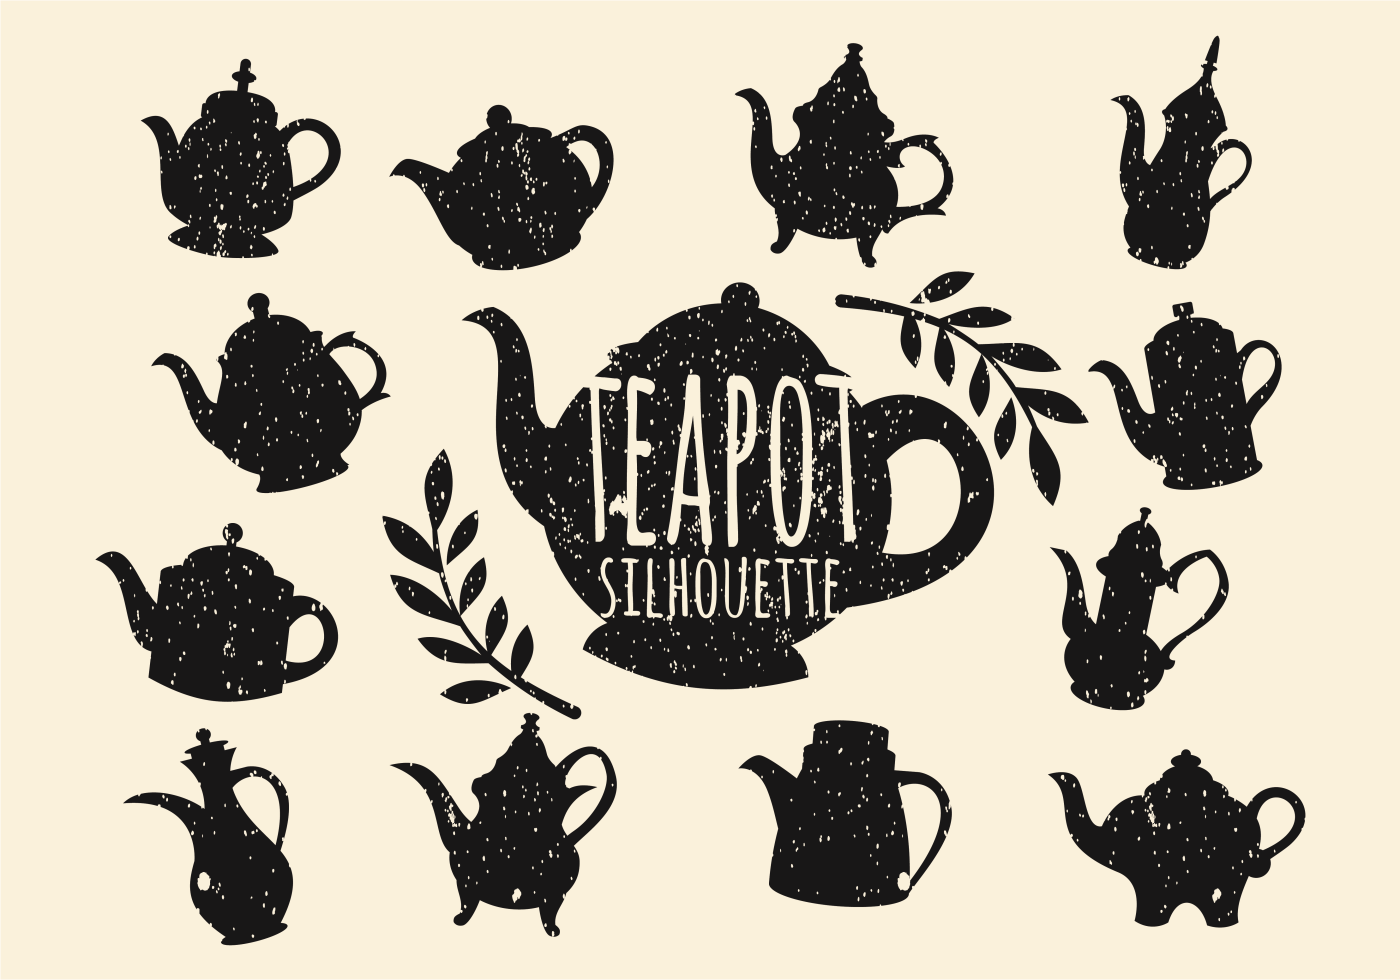 Vintage Teapot Silhouette Vector - Download Free Vector ...